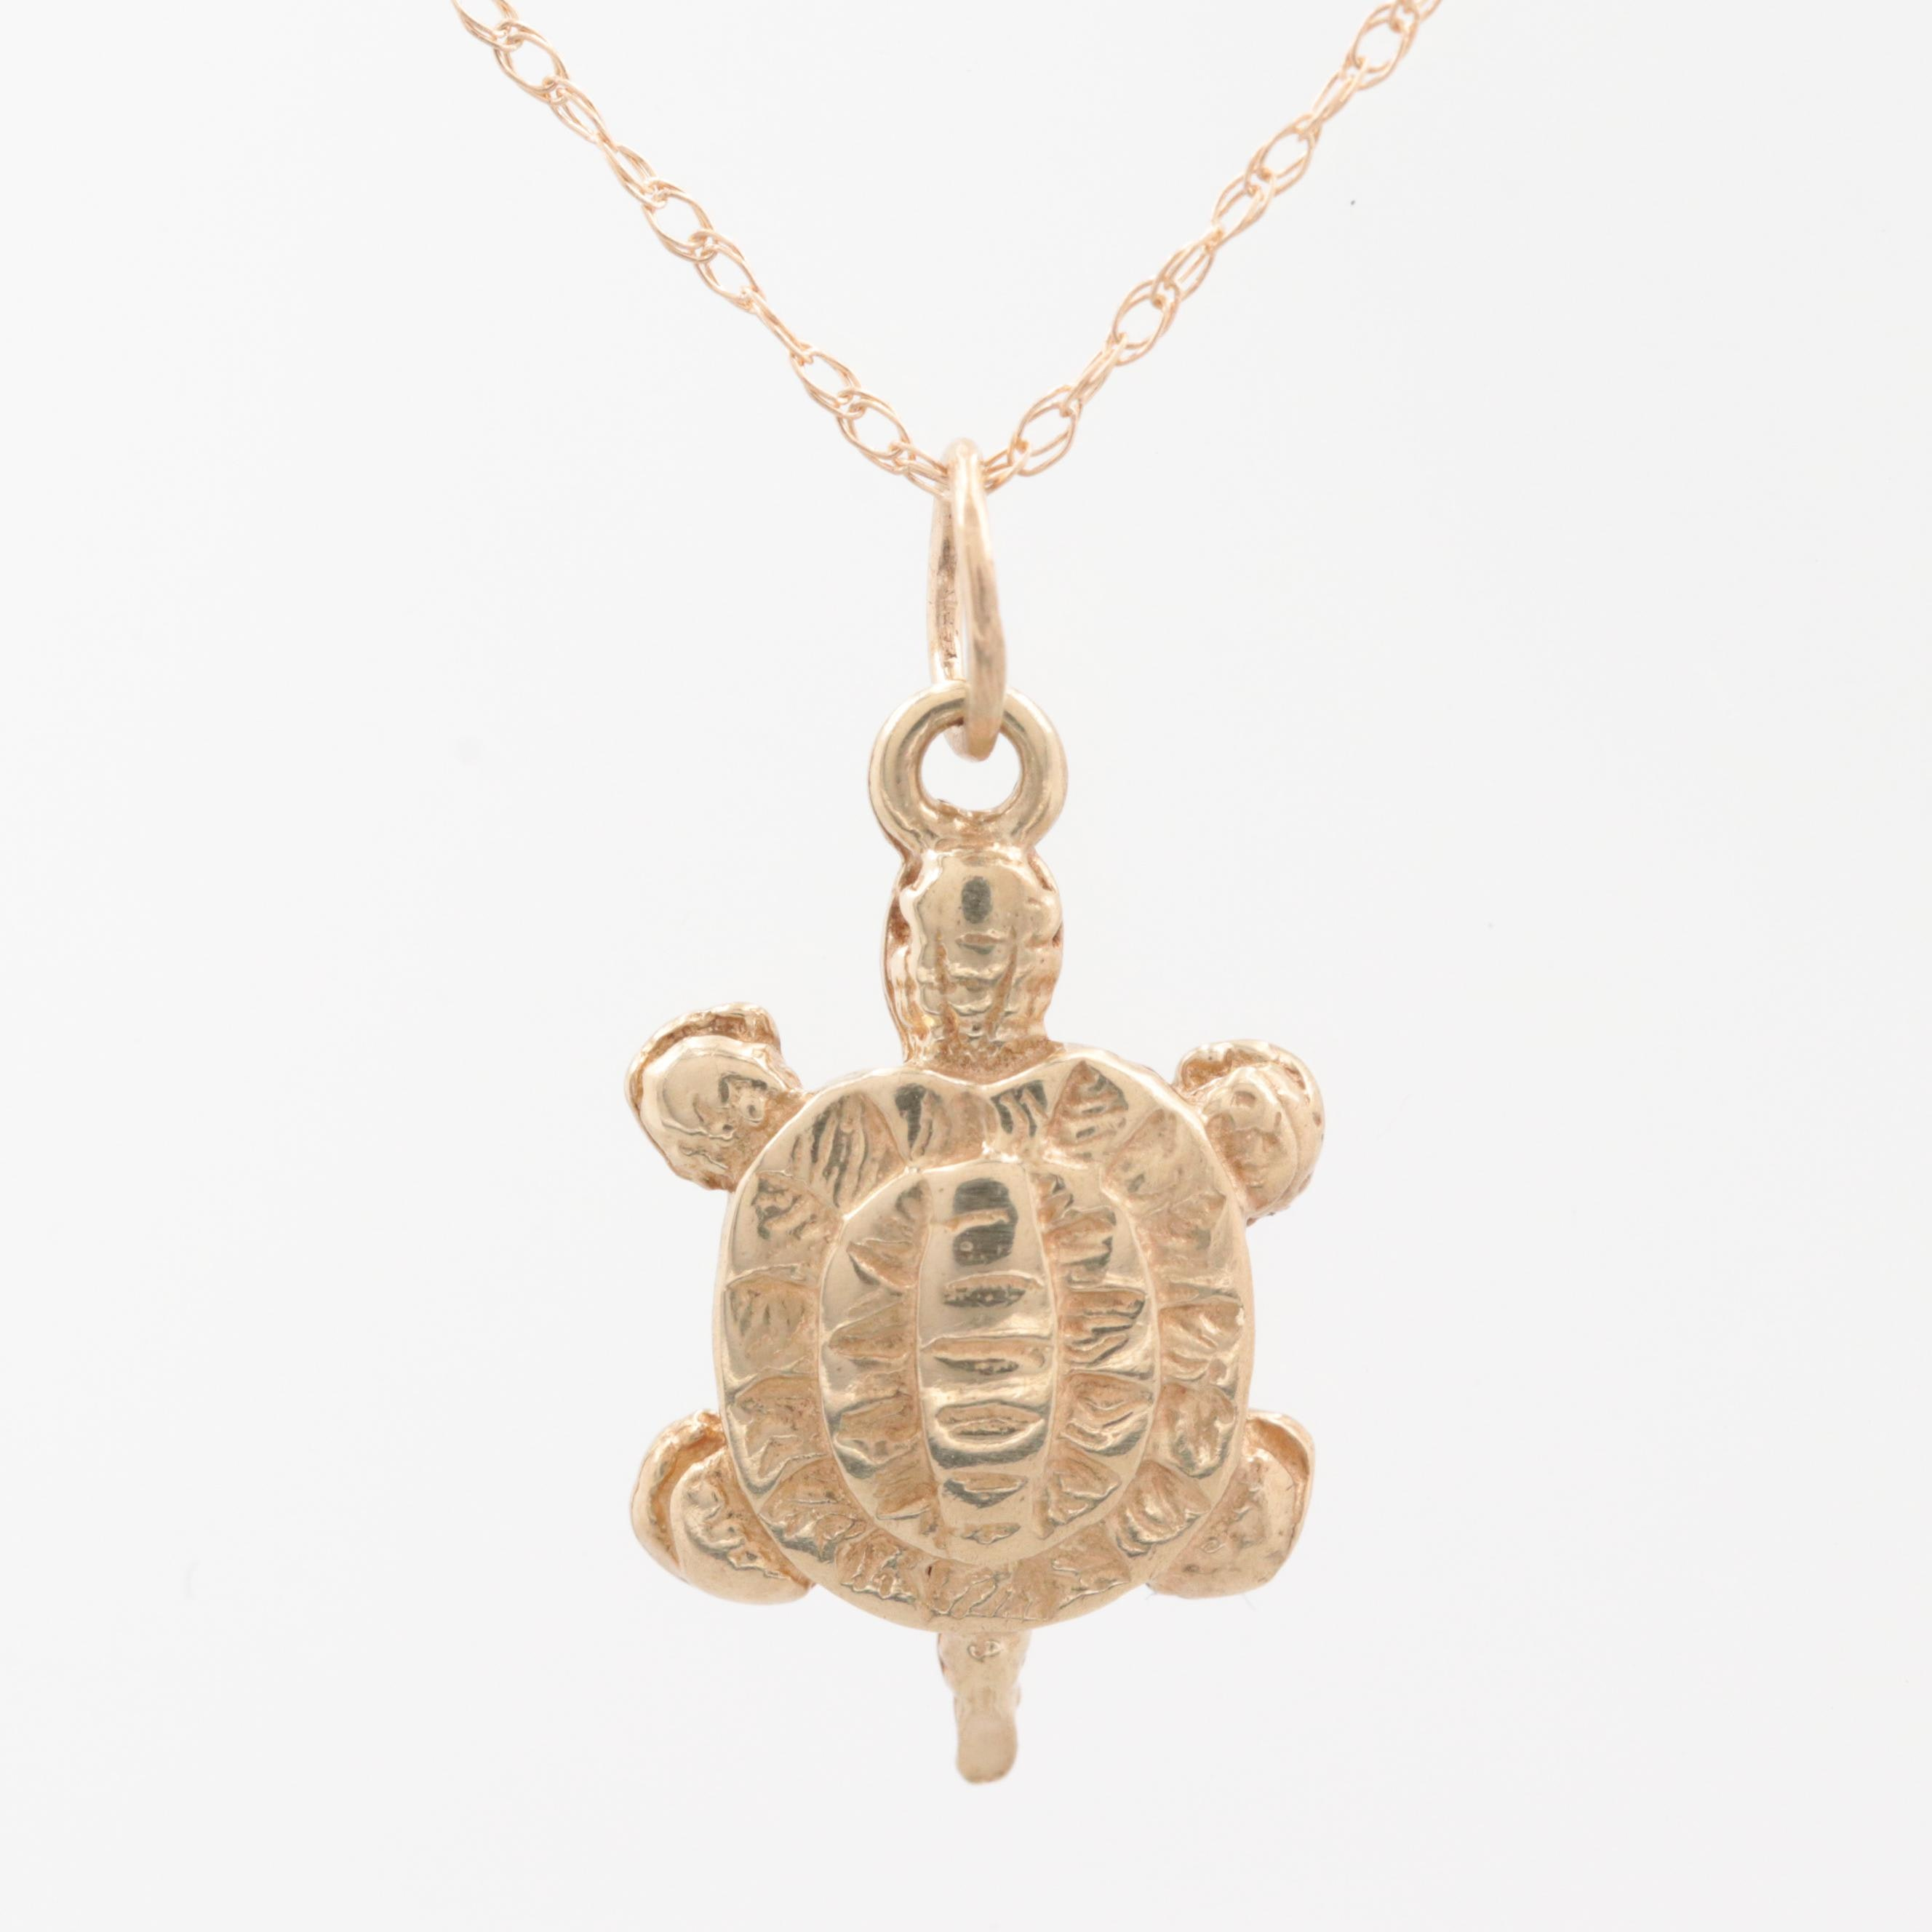 10K Yellow Gold Turtle Pendant on 14K Gold Chain Necklace